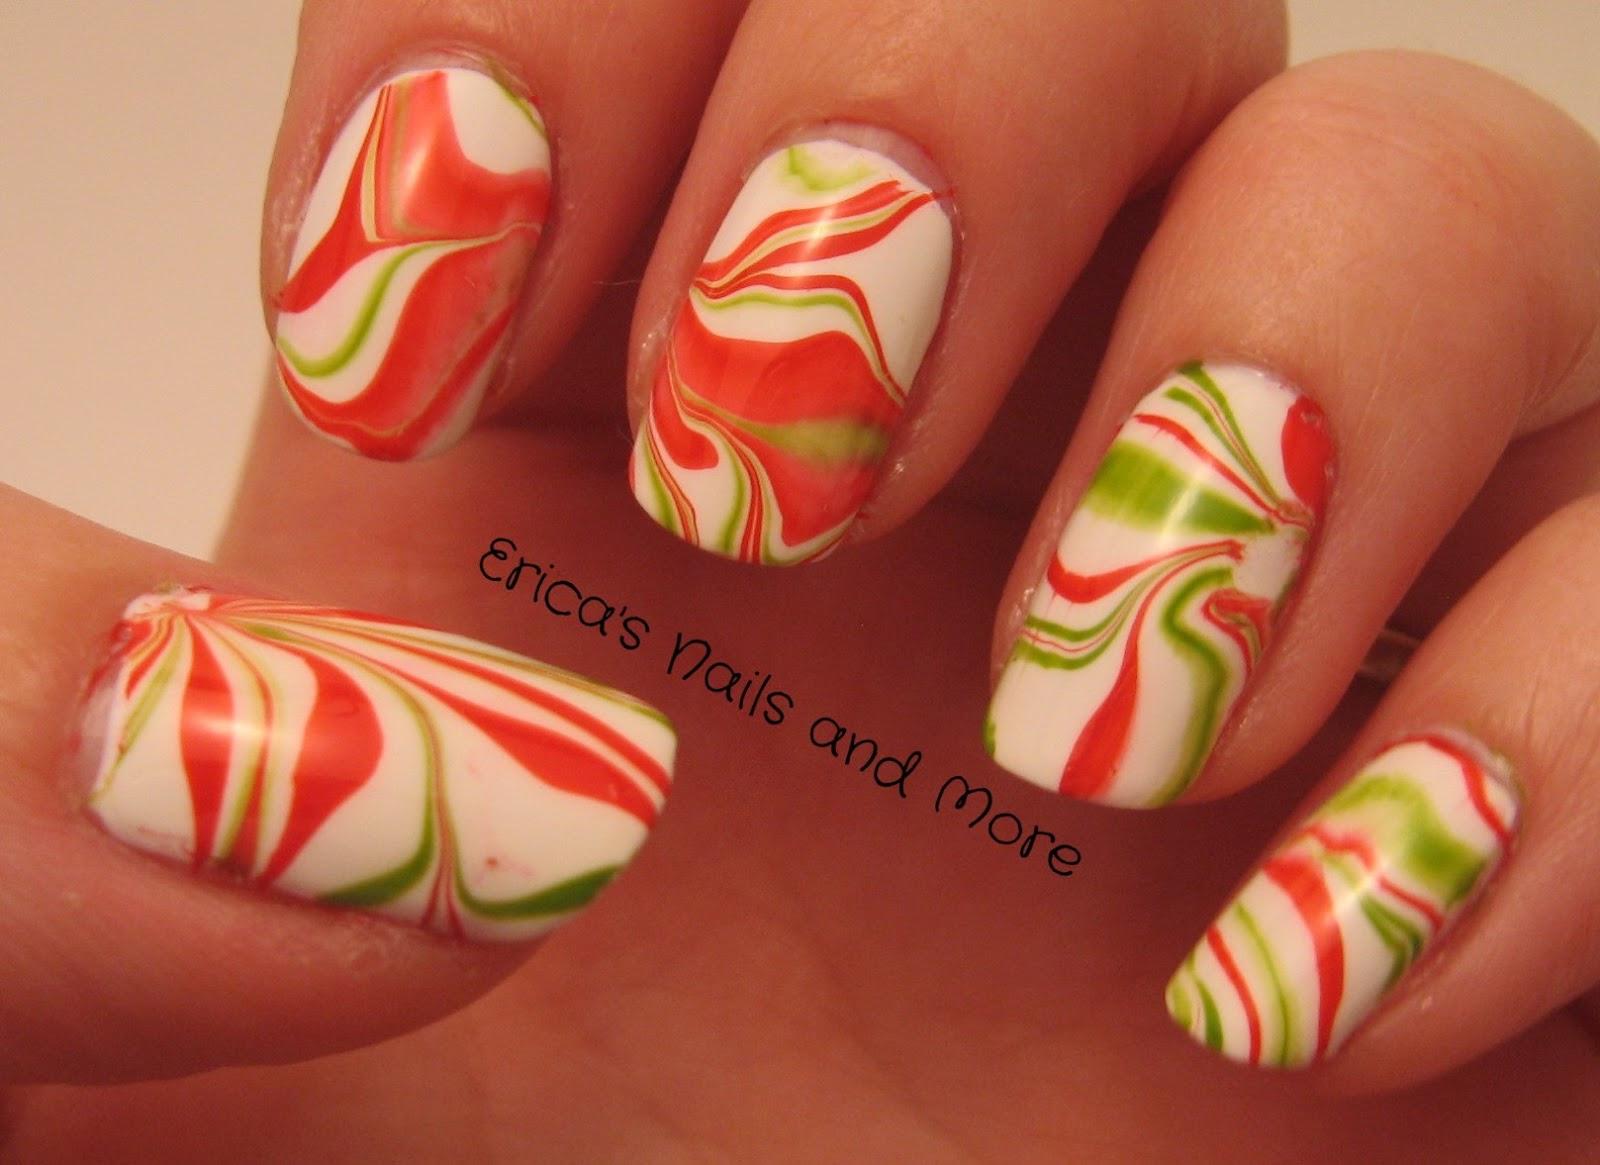 ericas nails and more candy cane nails